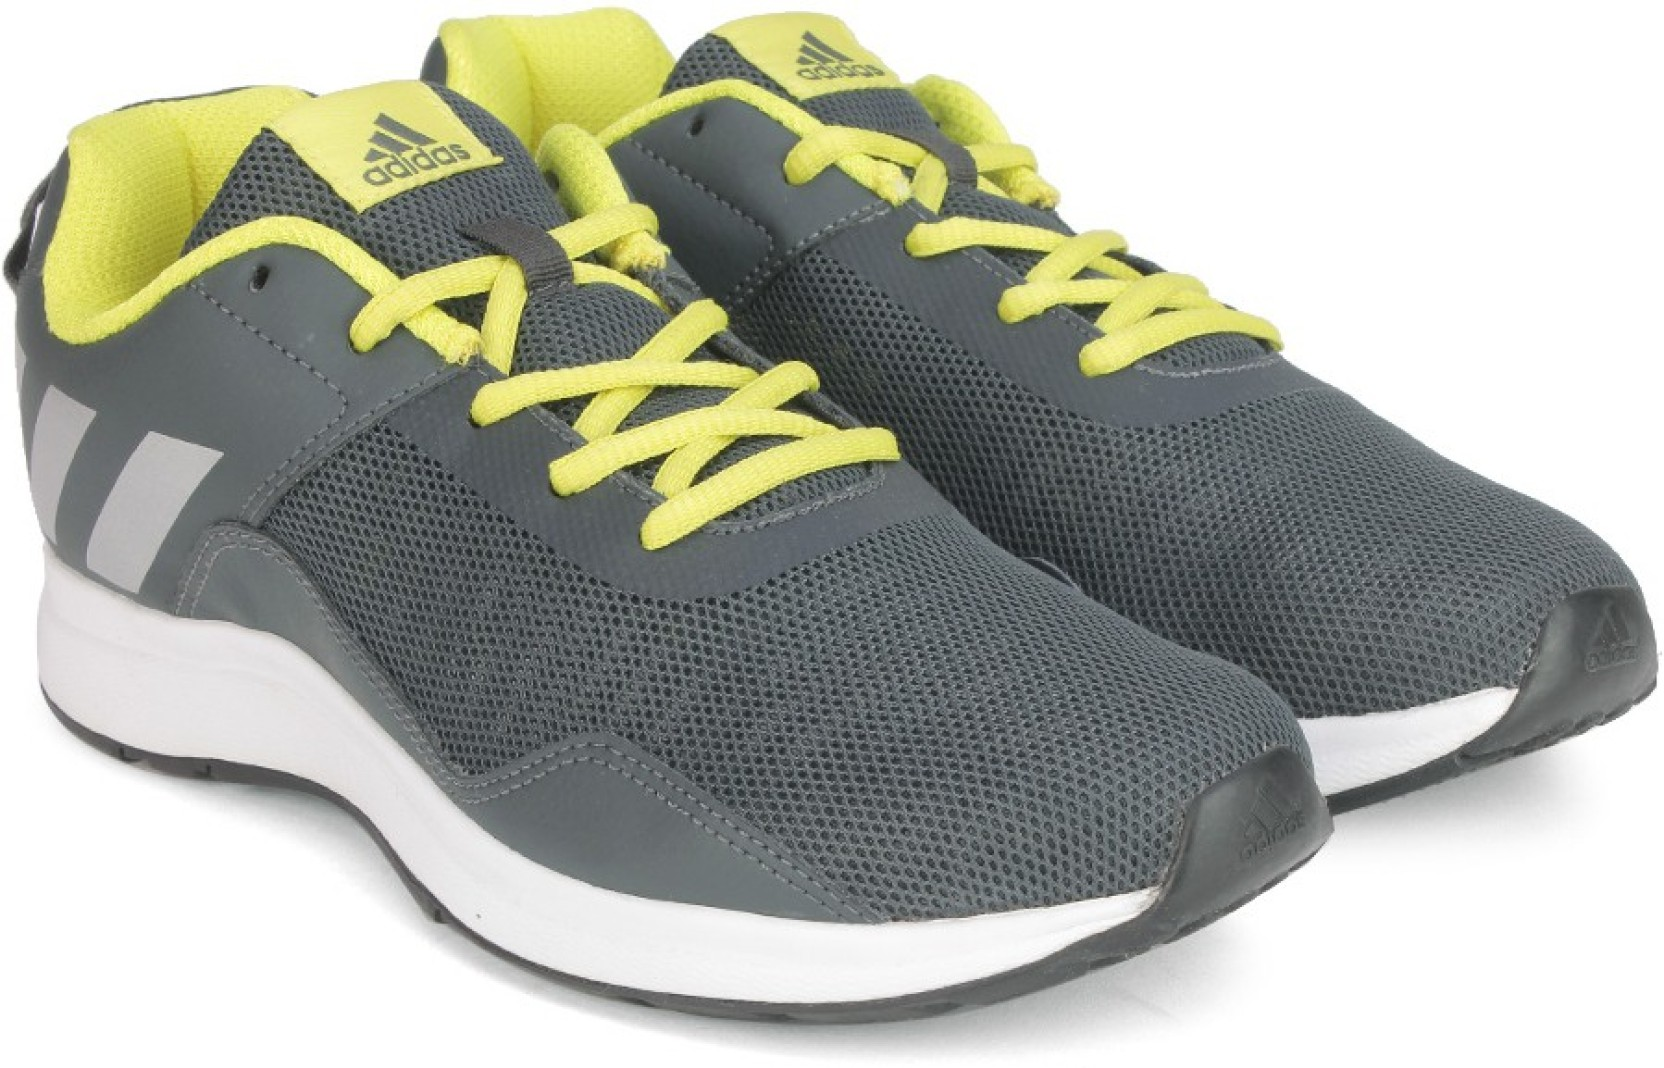 ADIDAS REMUS M Running Shoes For Men